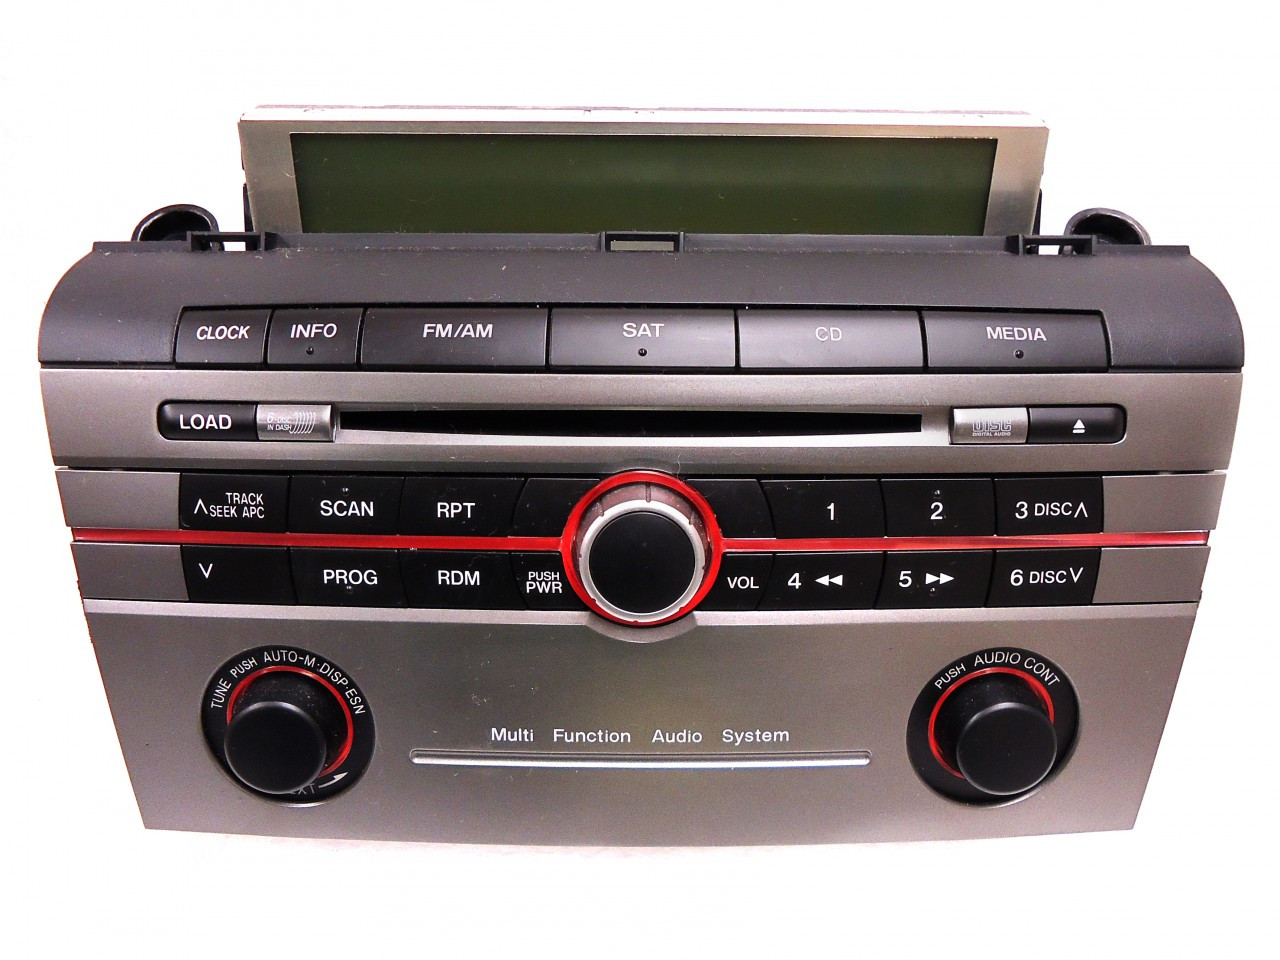 small resolution of mazda 3 radio stereo 6 disc changer cd player sat multi function audio system br9k66arx bose